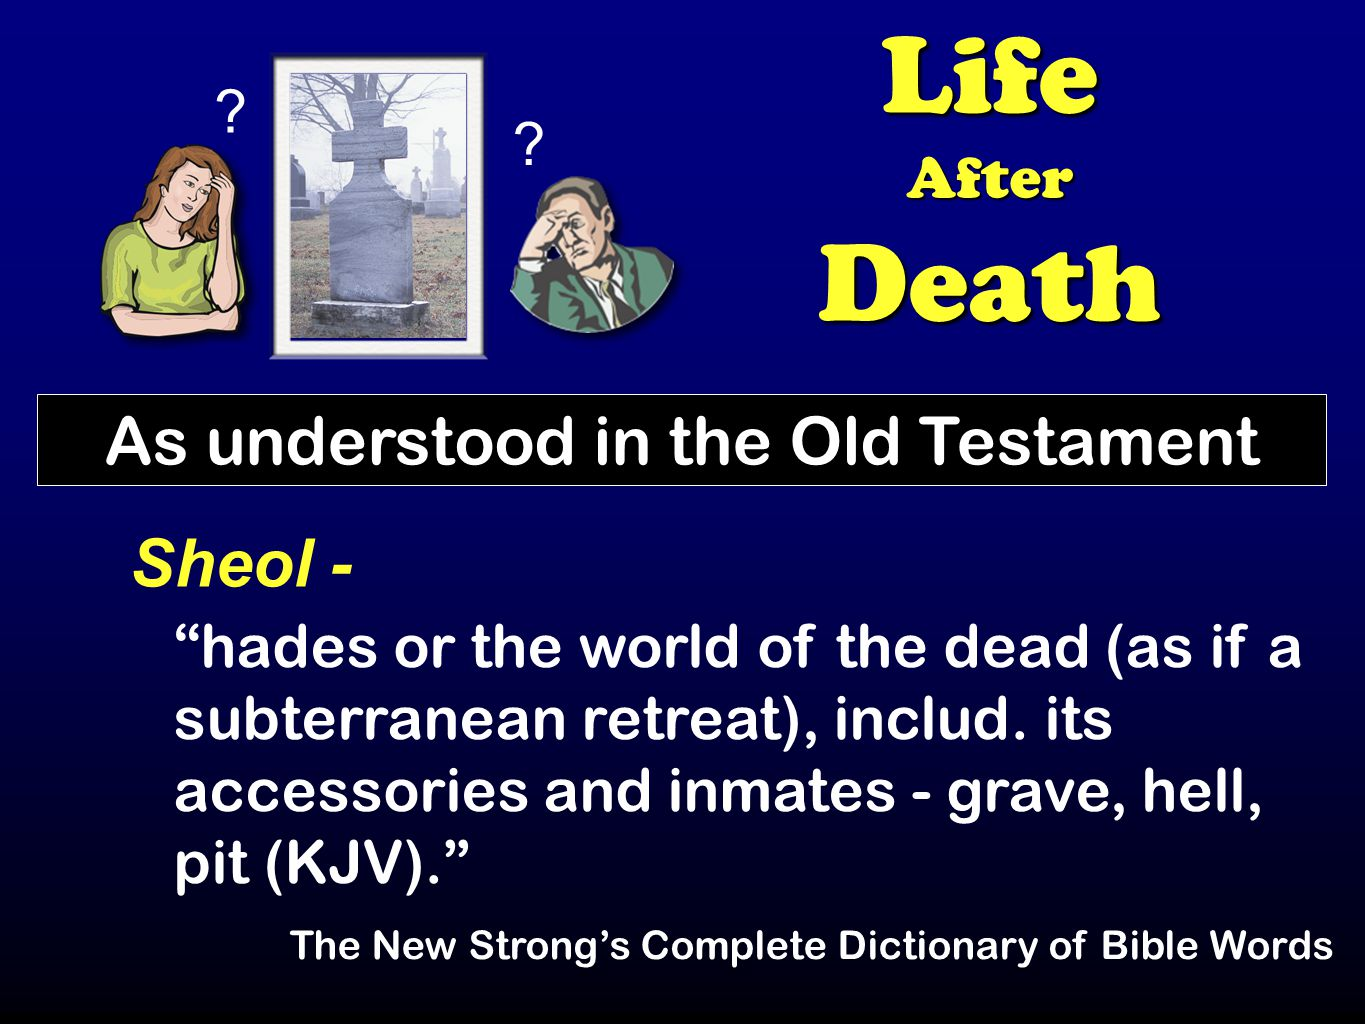 LifeAfterDeath As understood in the Old Testament Sheol - hades or the world of the dead (as if a subterranean retreat), includ.